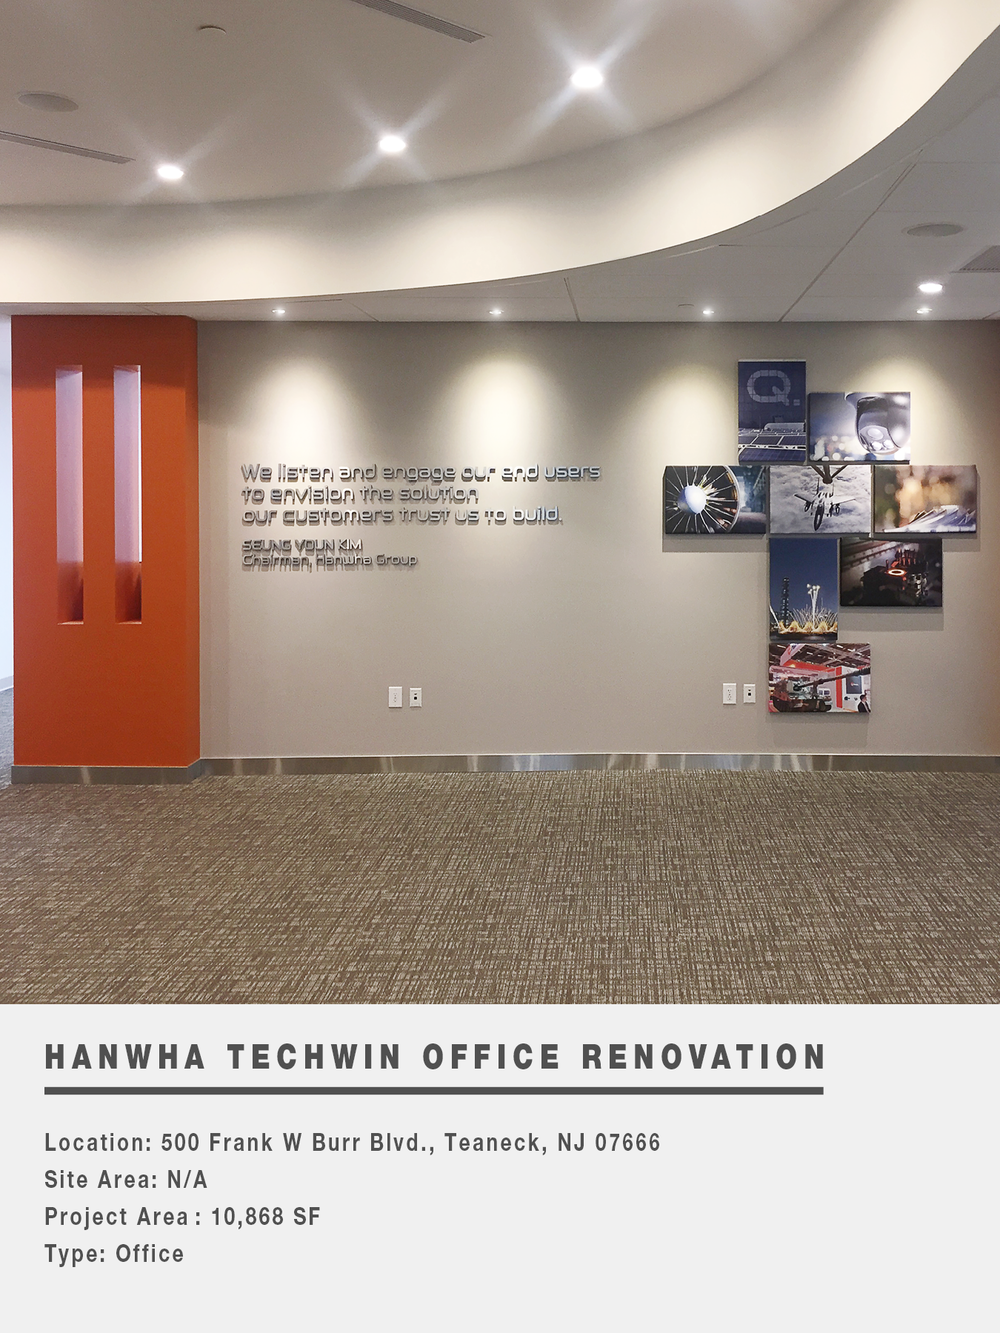 HANWHA TECHWIN OFFICE RENOVATION